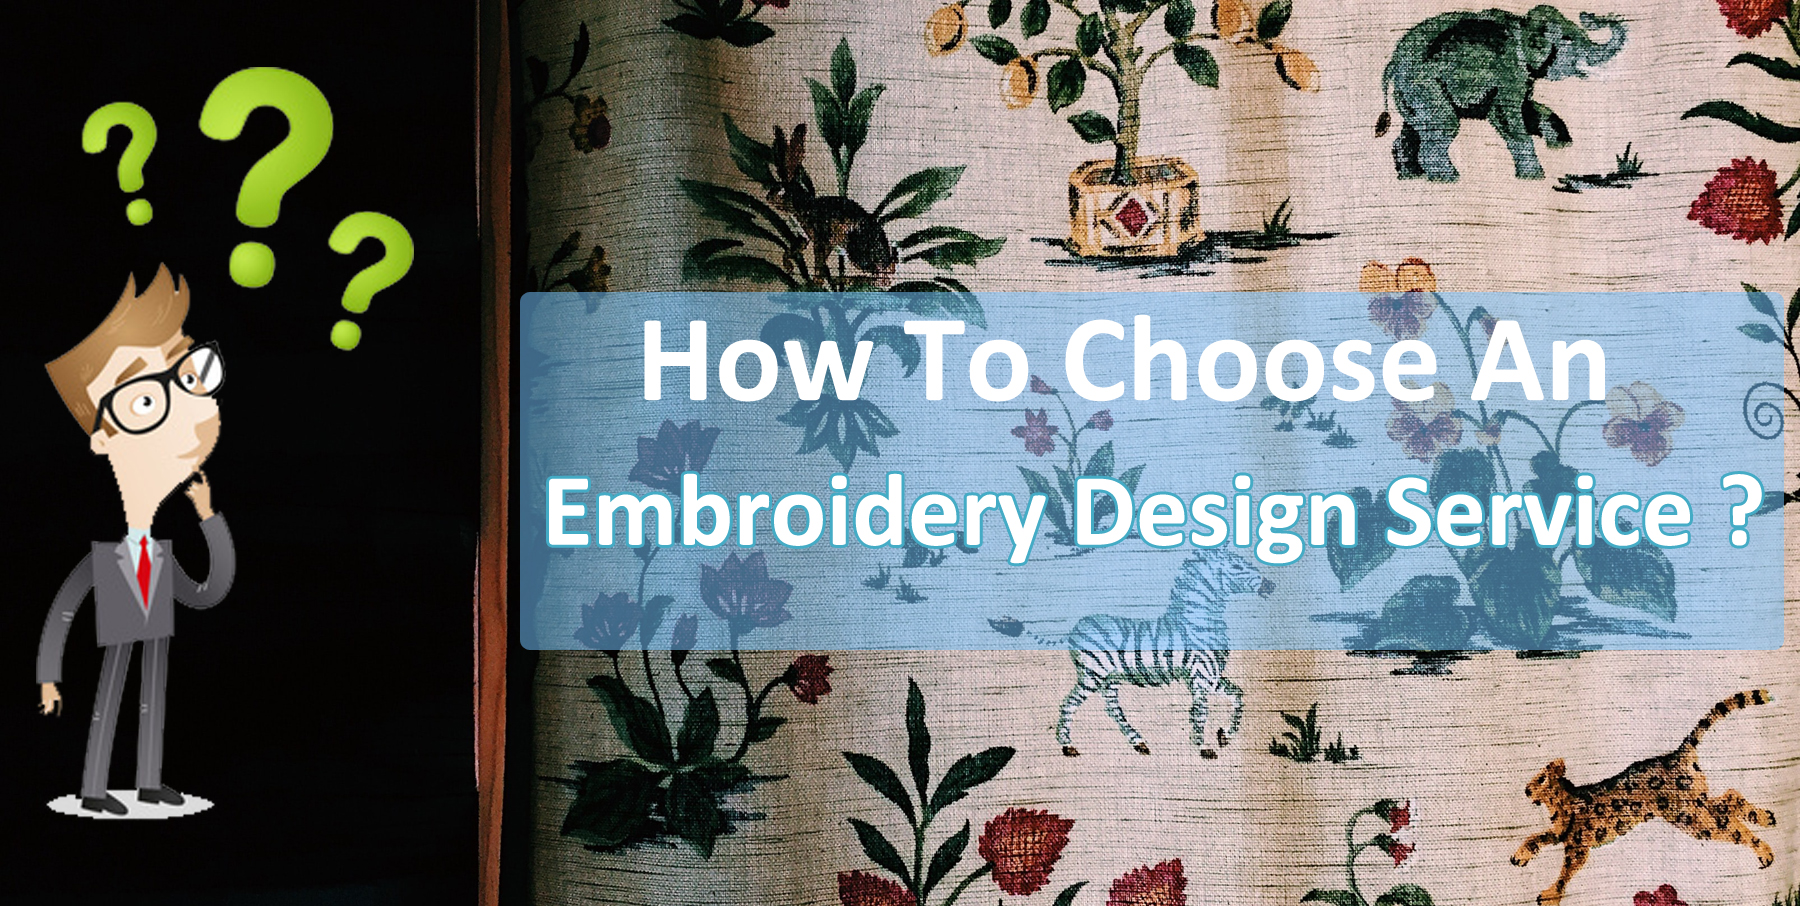 <p> How To Choose An Embroidery Design Service</p>